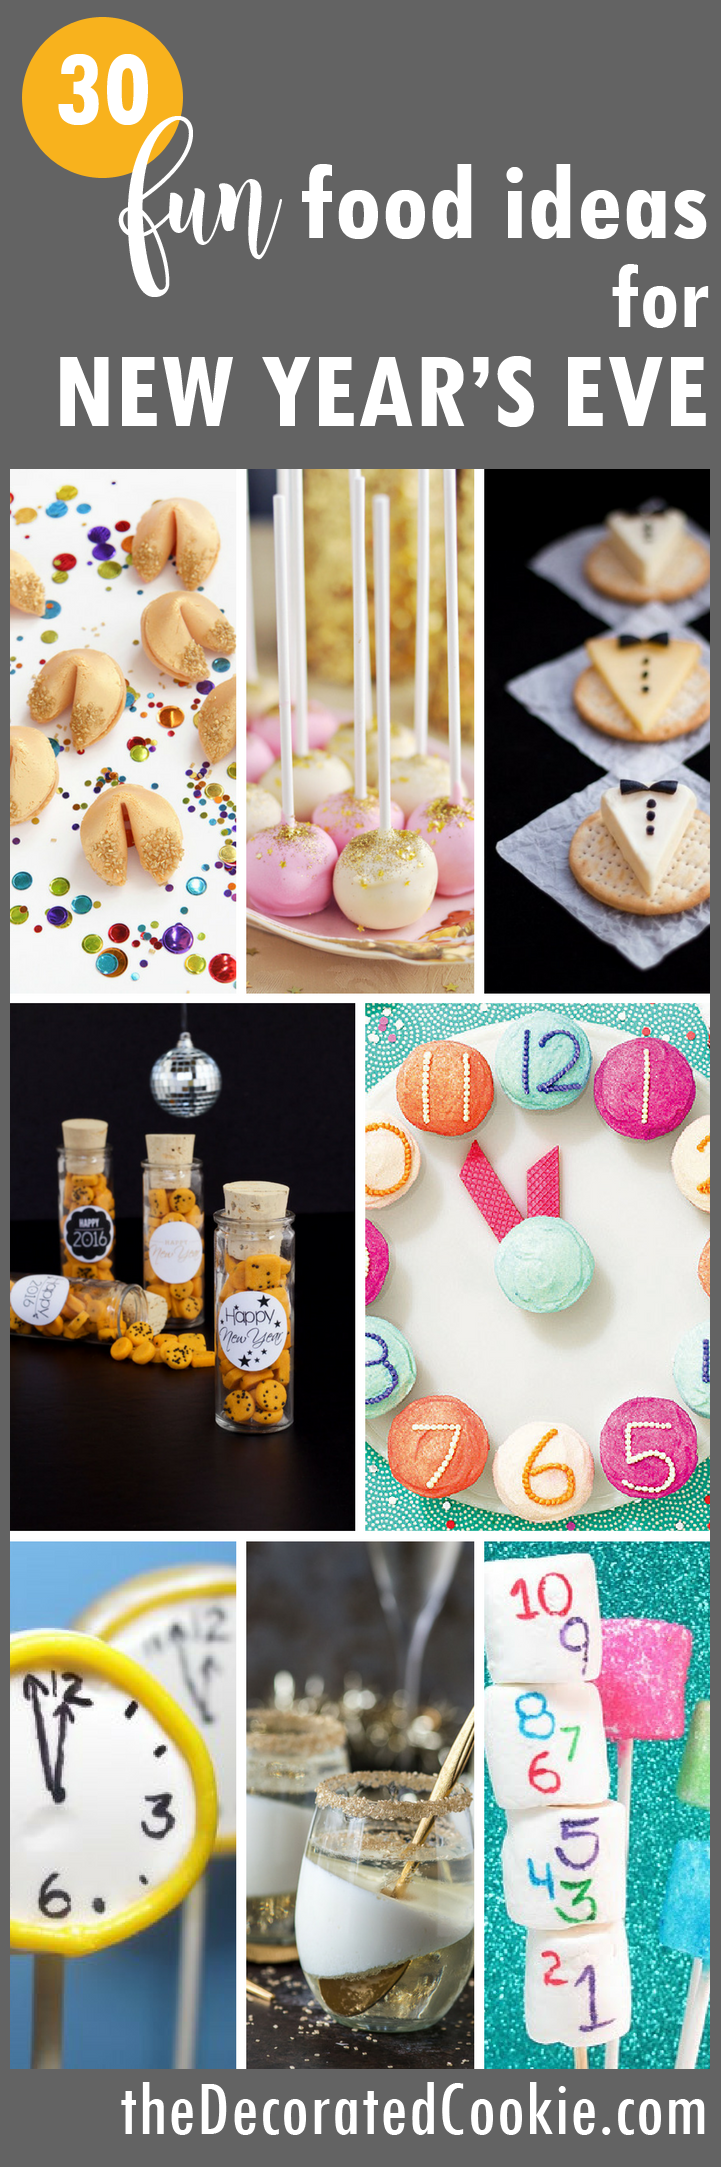 NEW YEAR's EVE FUN FOOD IDEAS -- Creative food for New Year's